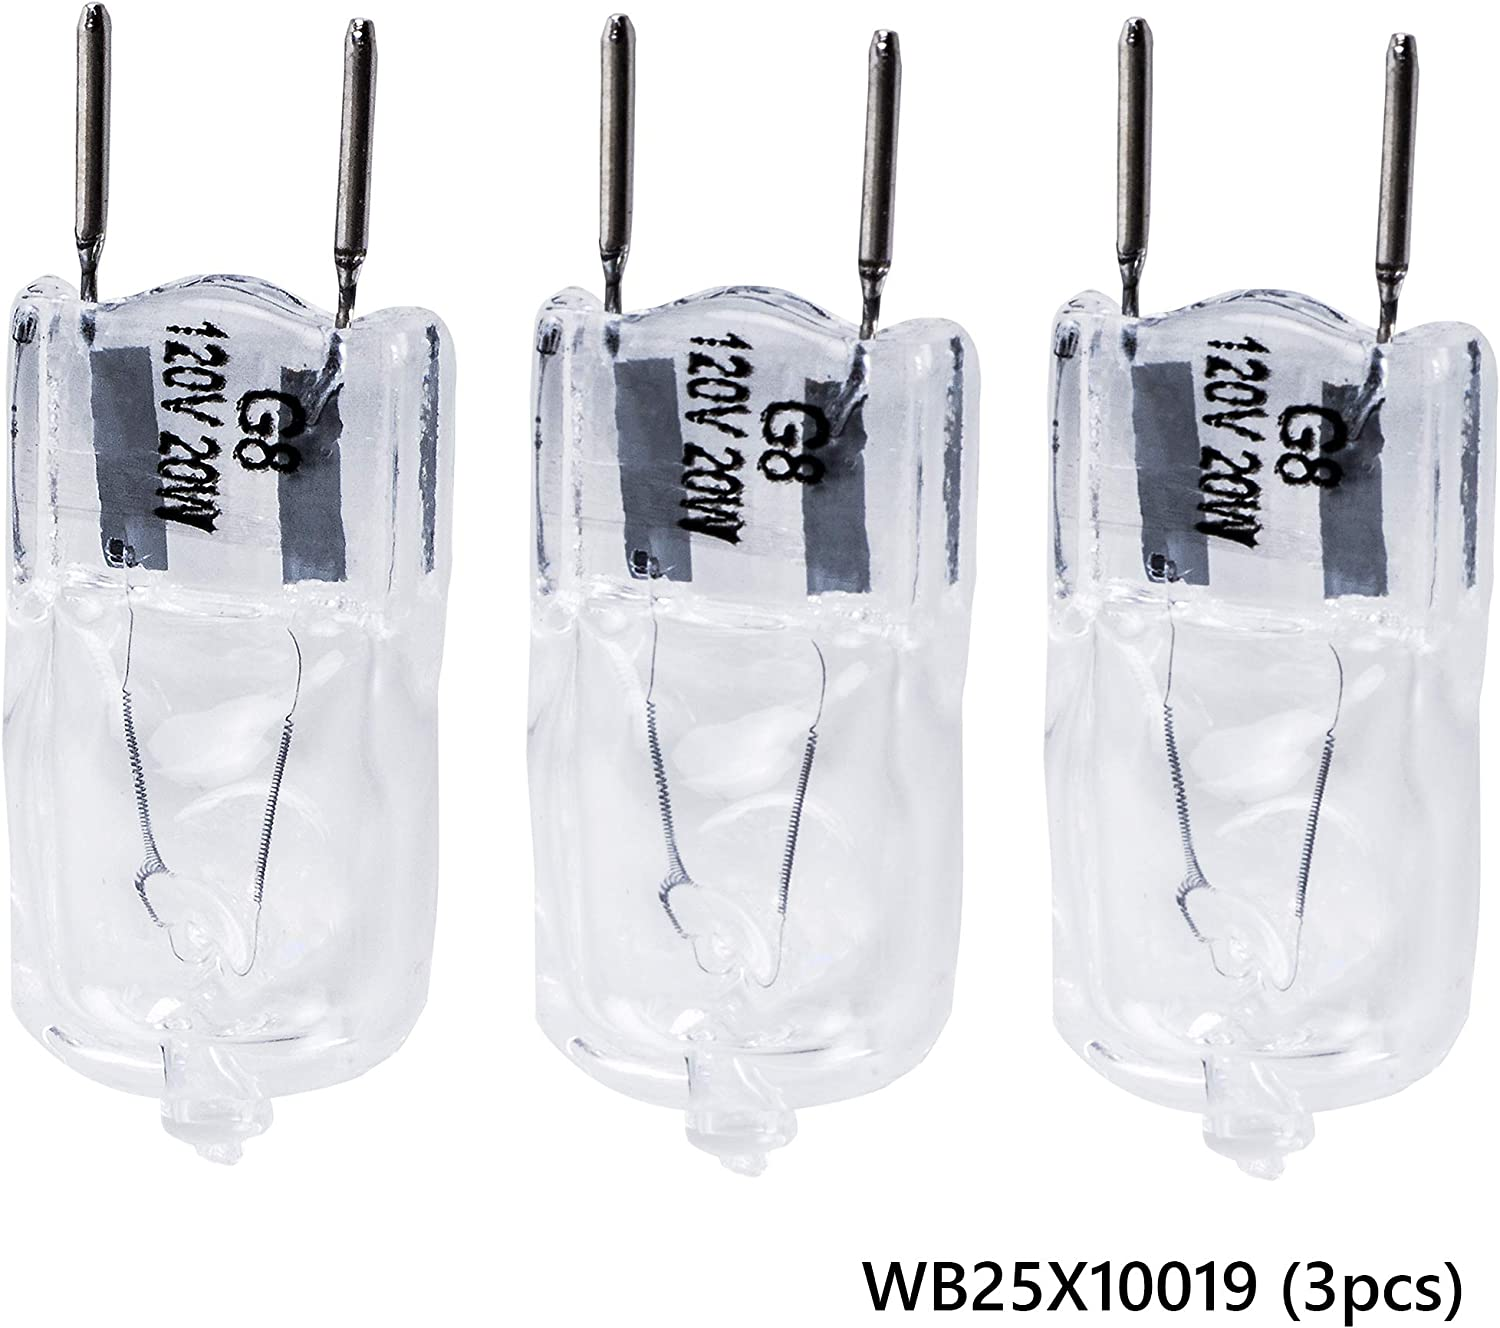 Ultra Durable WB25X10019 20W 120V Microwave Halogen Lamp Bulb Replacement part by Blue Stars – Exact Fit For General Electric & Kenmore Microwaves – Replaces WB08X10050 AP4380308 PS2351821 - PACK OF 3